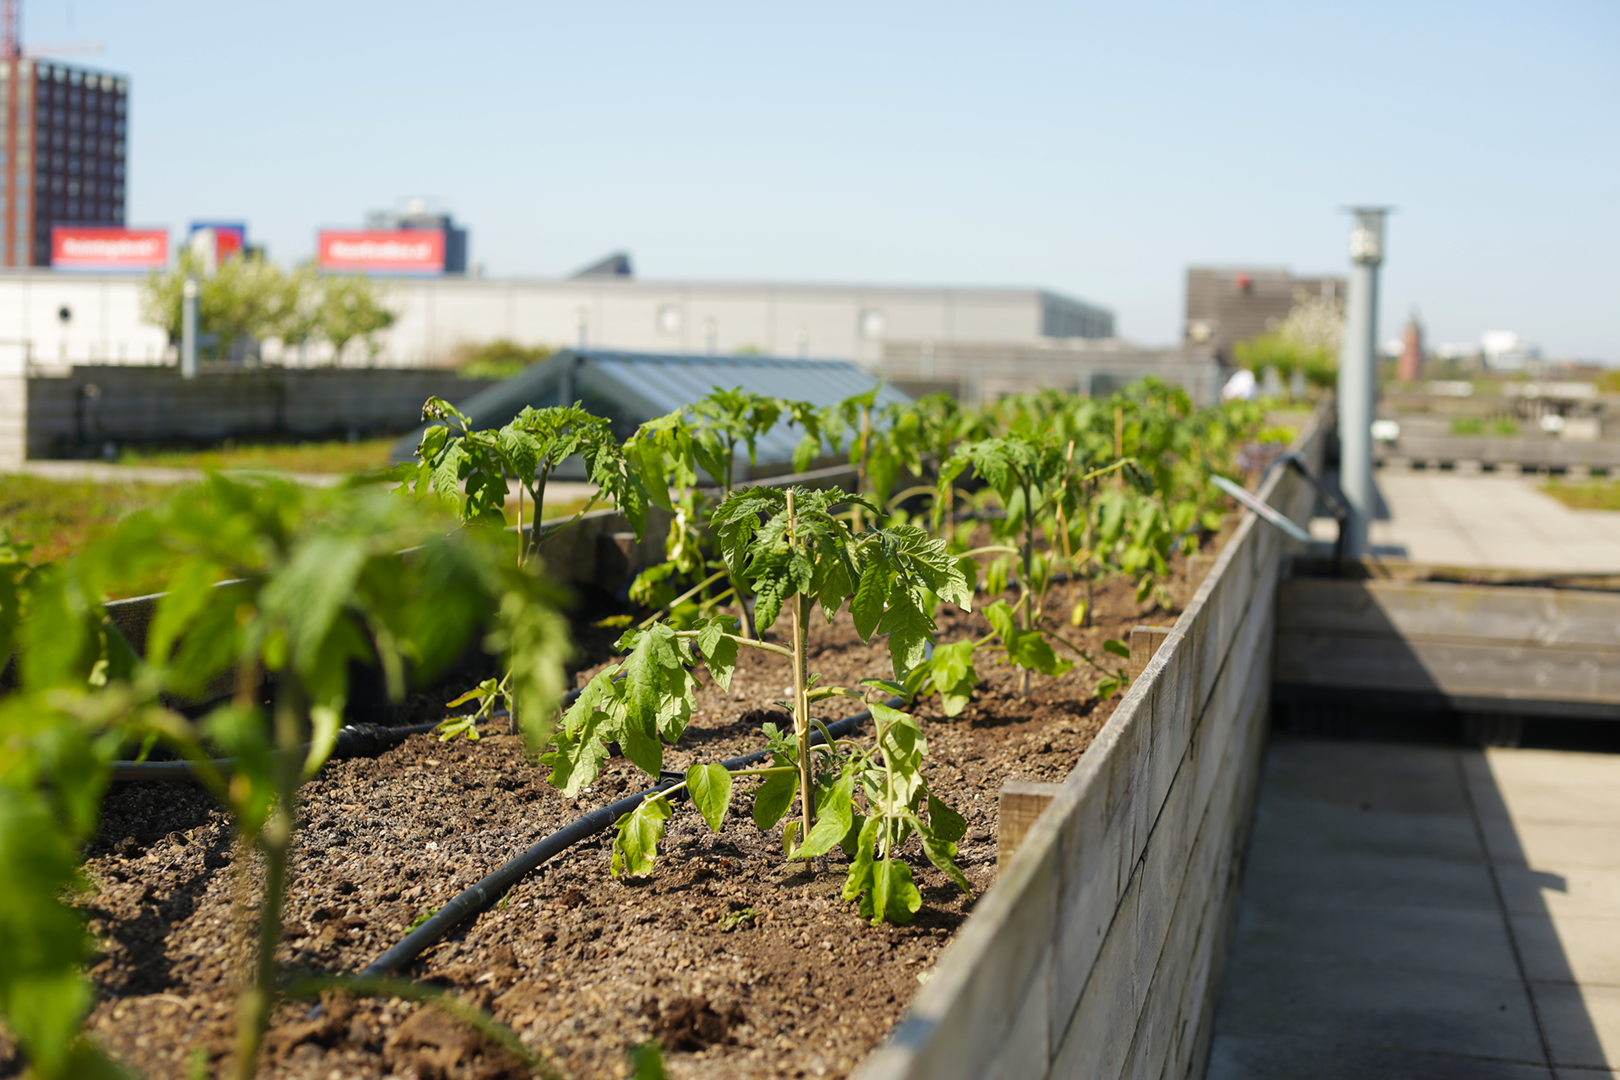 Zuidpark Rooftop Garden is the largest in Europe, nearly an acre of urban agriculture atop a business complex.